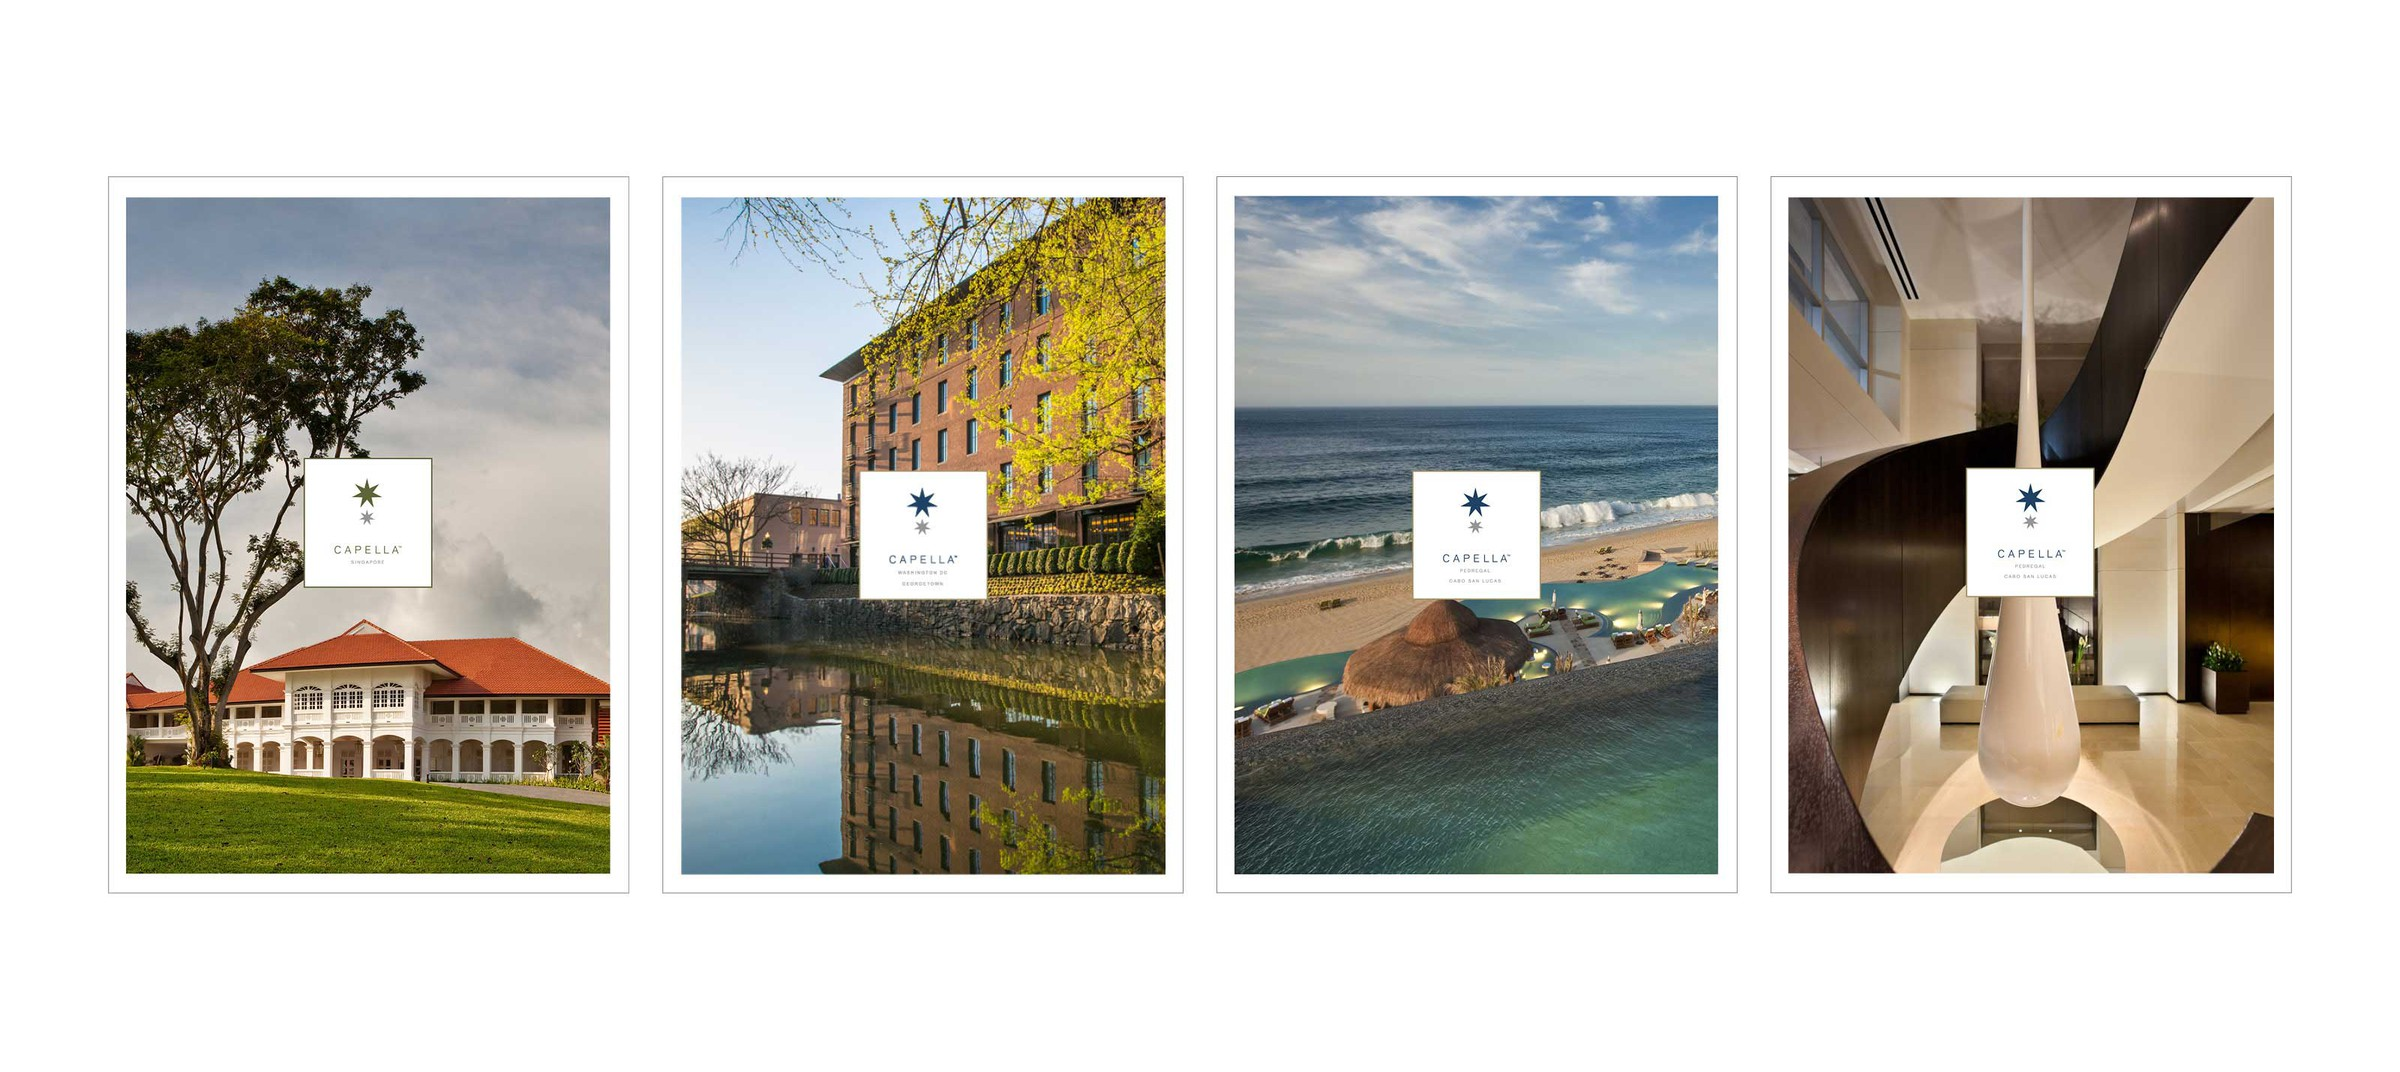 Digital and print designs by DTE Studio for Capella Hotels